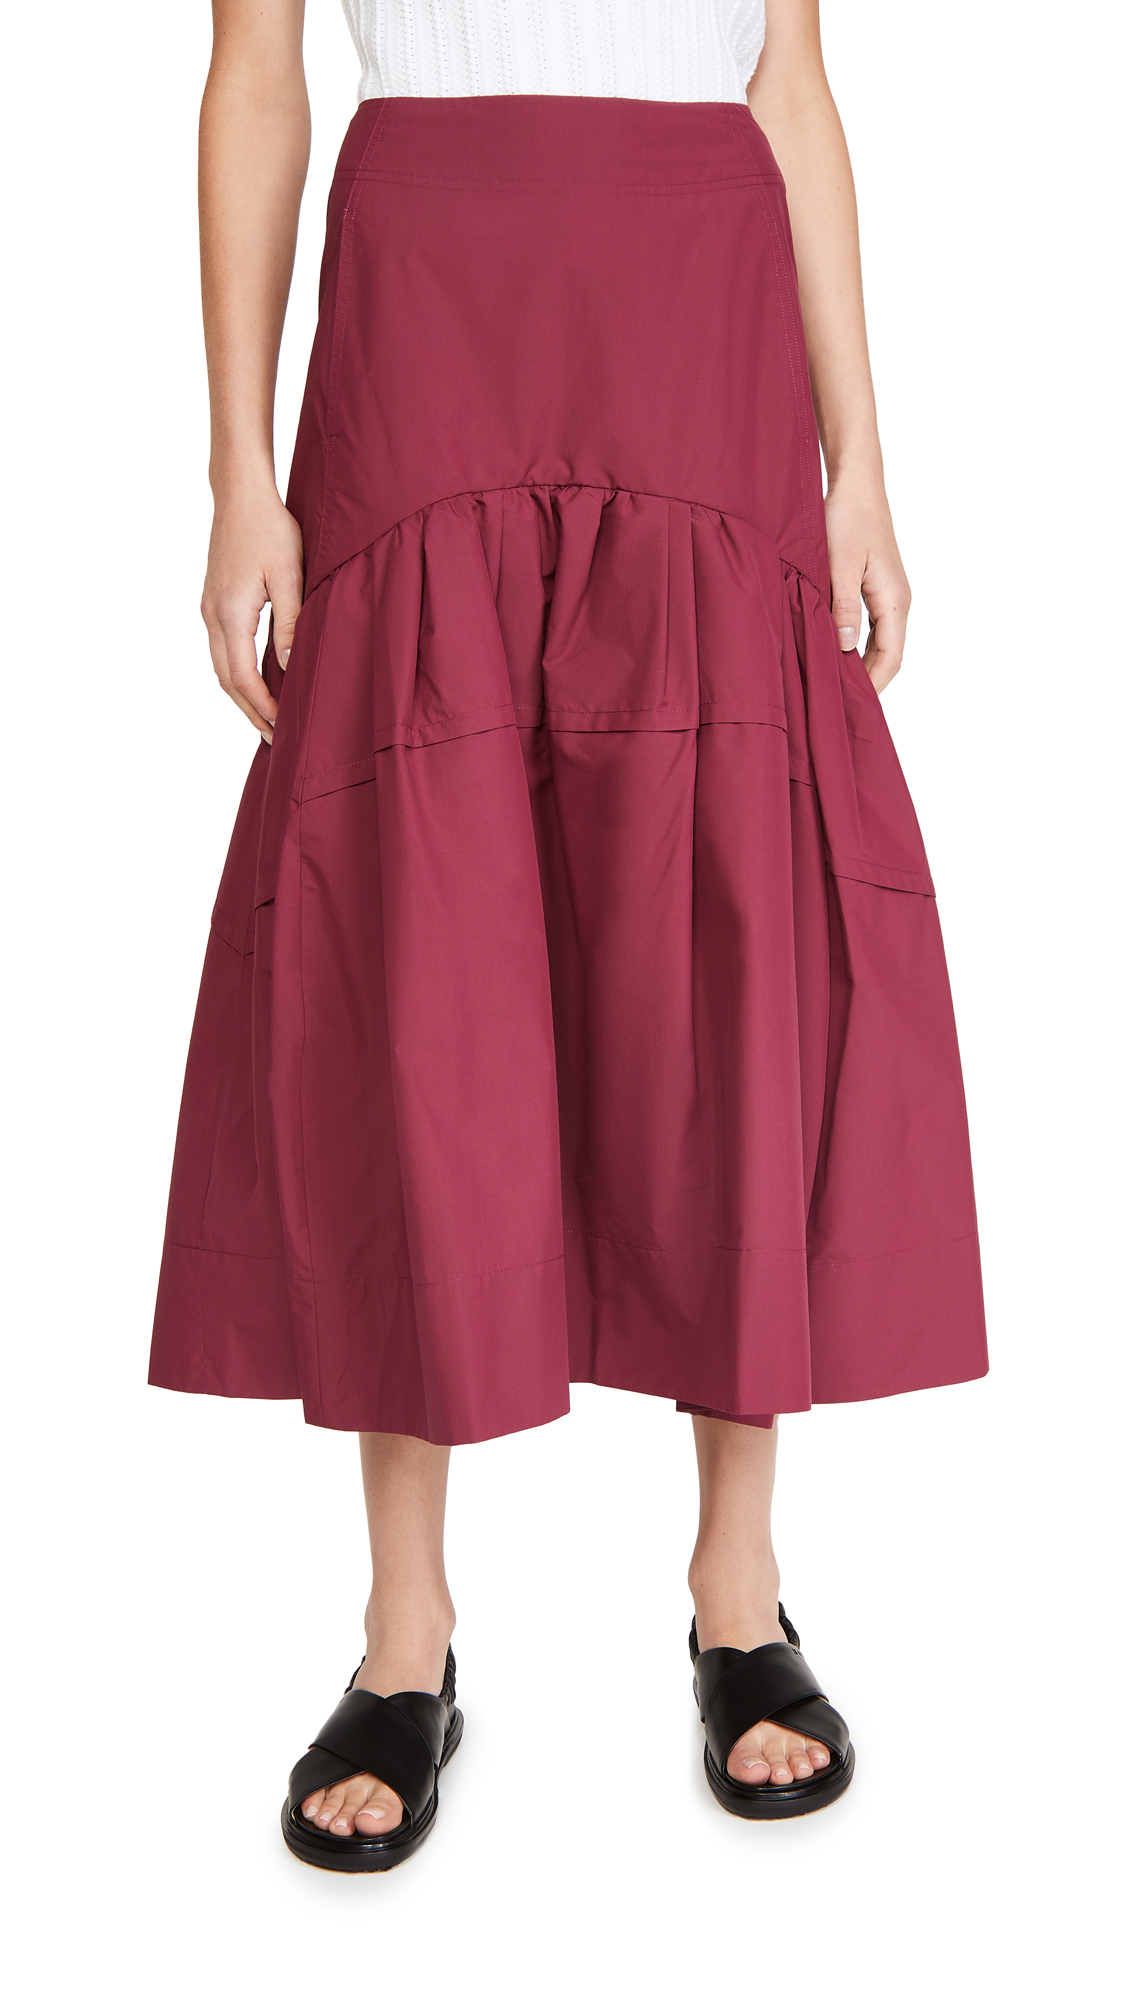 3.1 Phillip Lim Shirred Midi Skirt